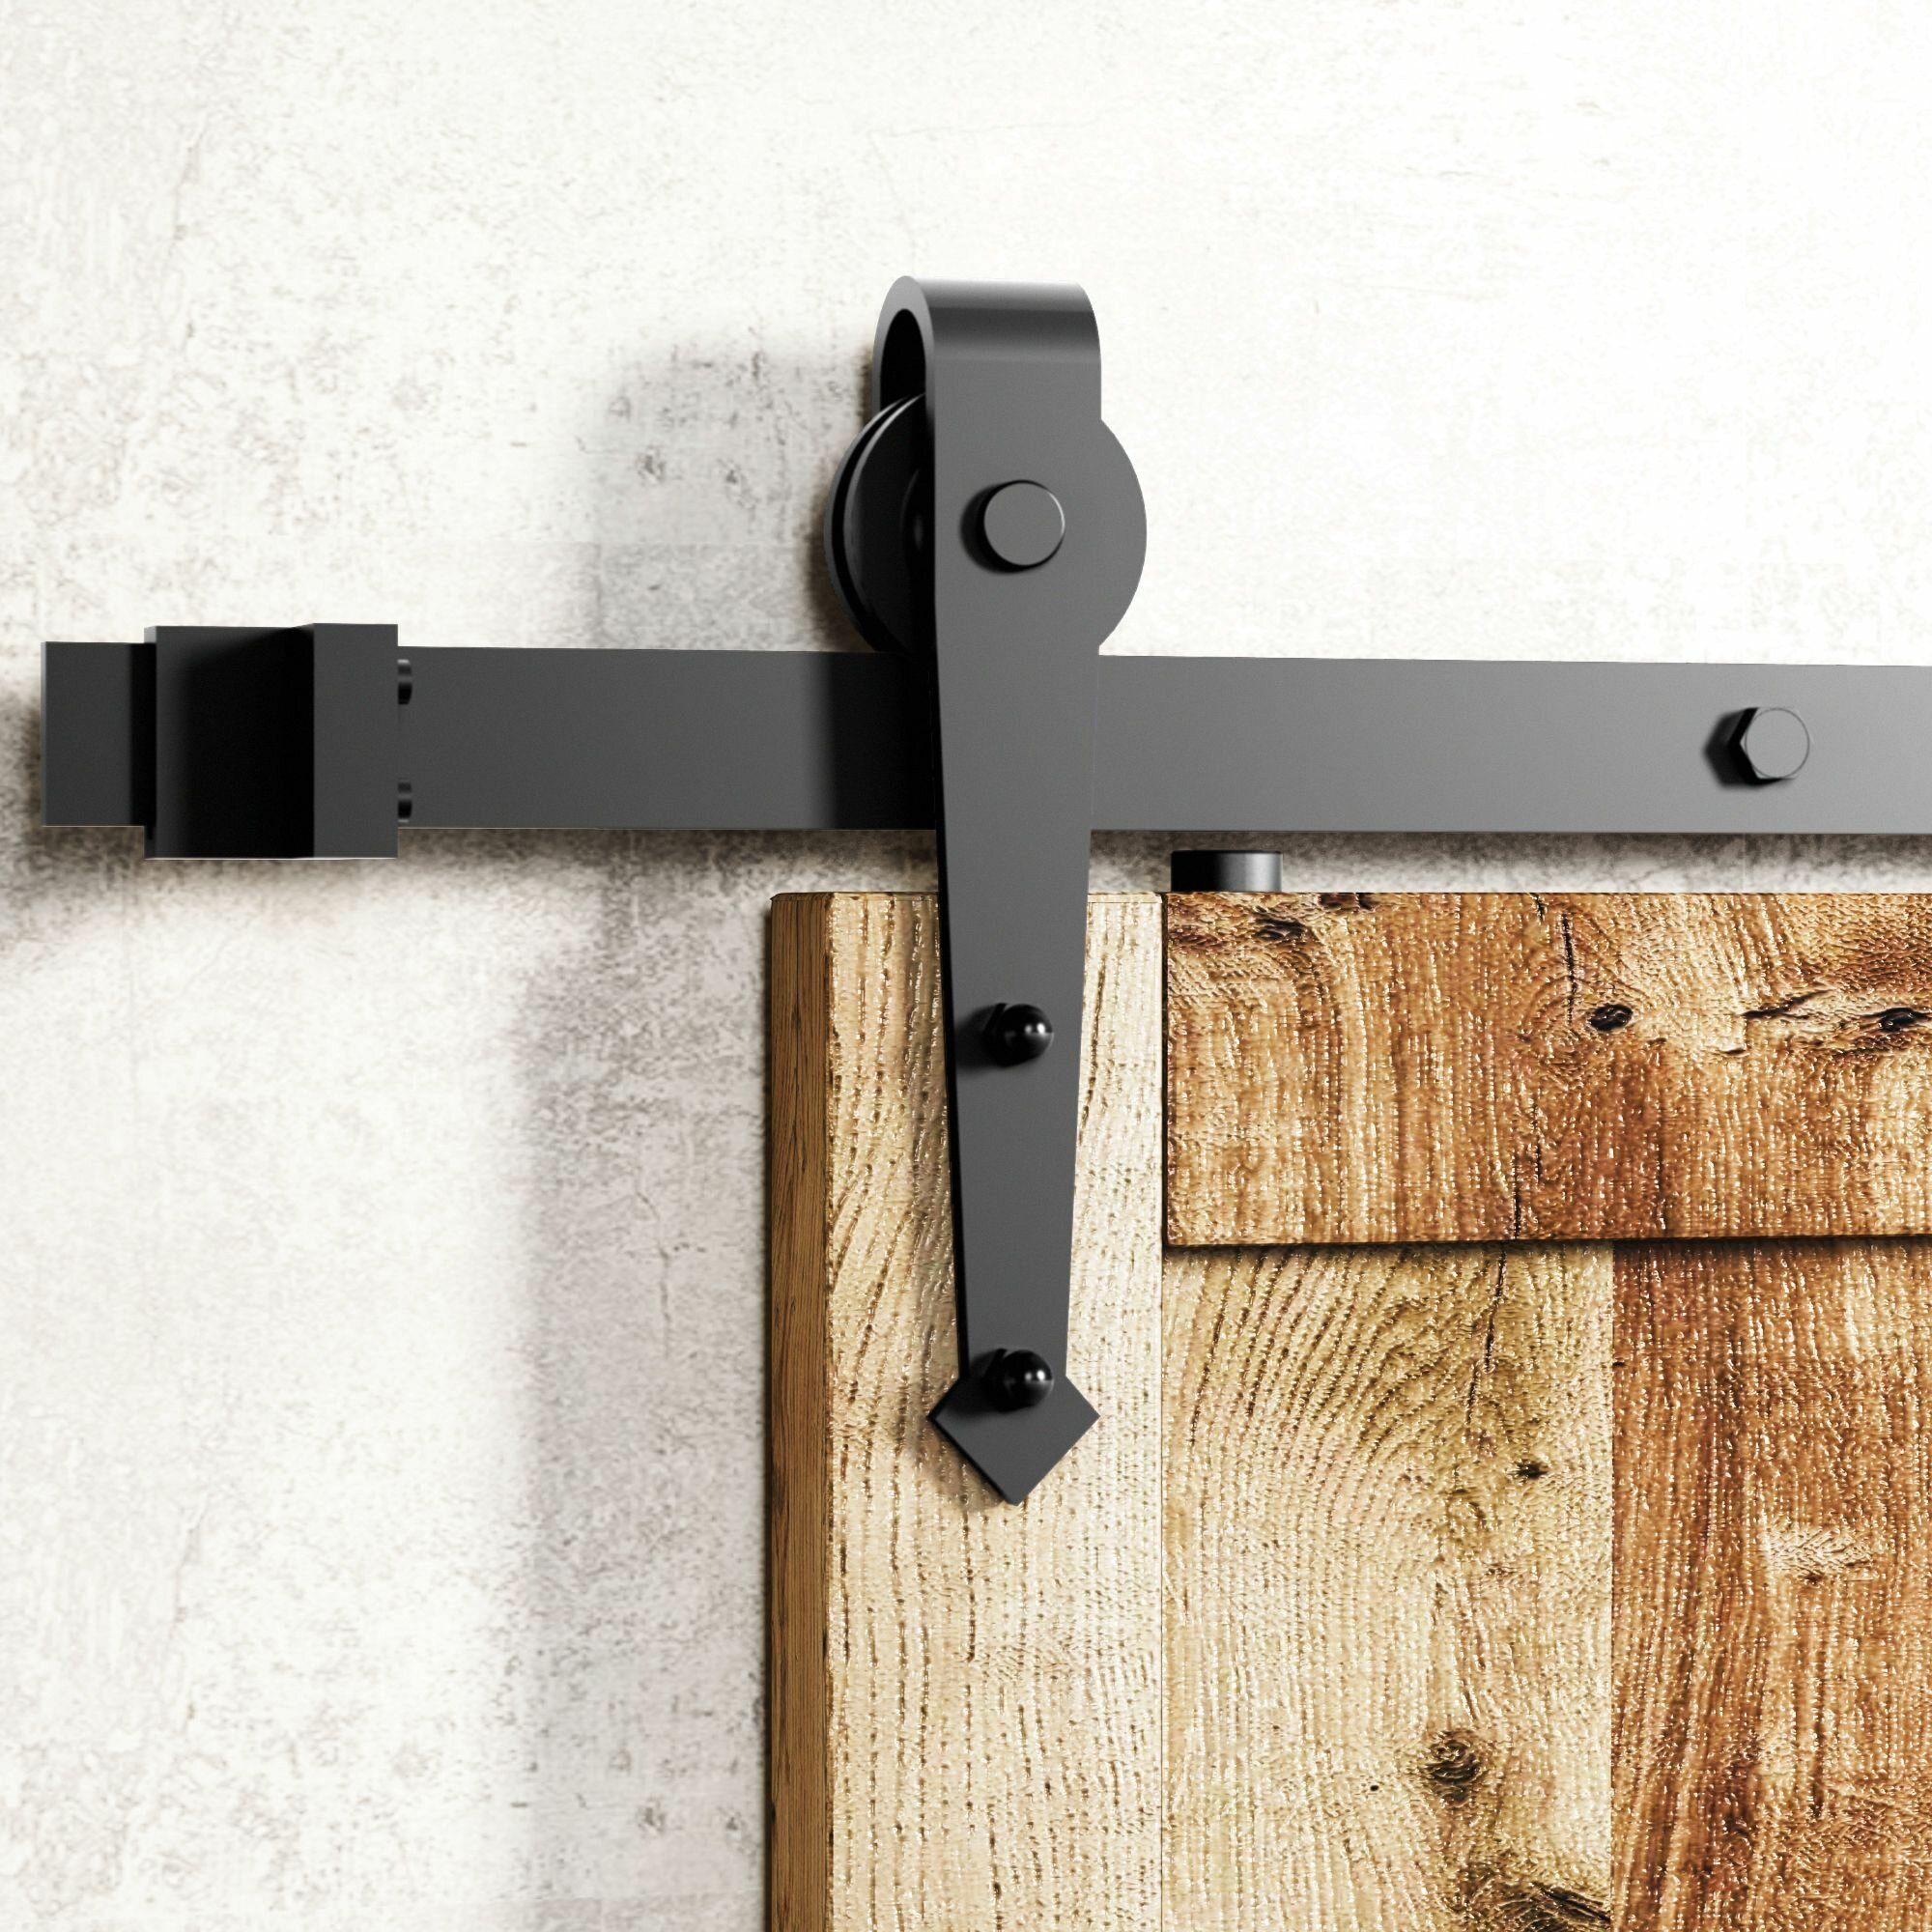 Vancleef Arrow Sliding Standard Single Track Barn Door Hardware Kit Reviews Wayfair